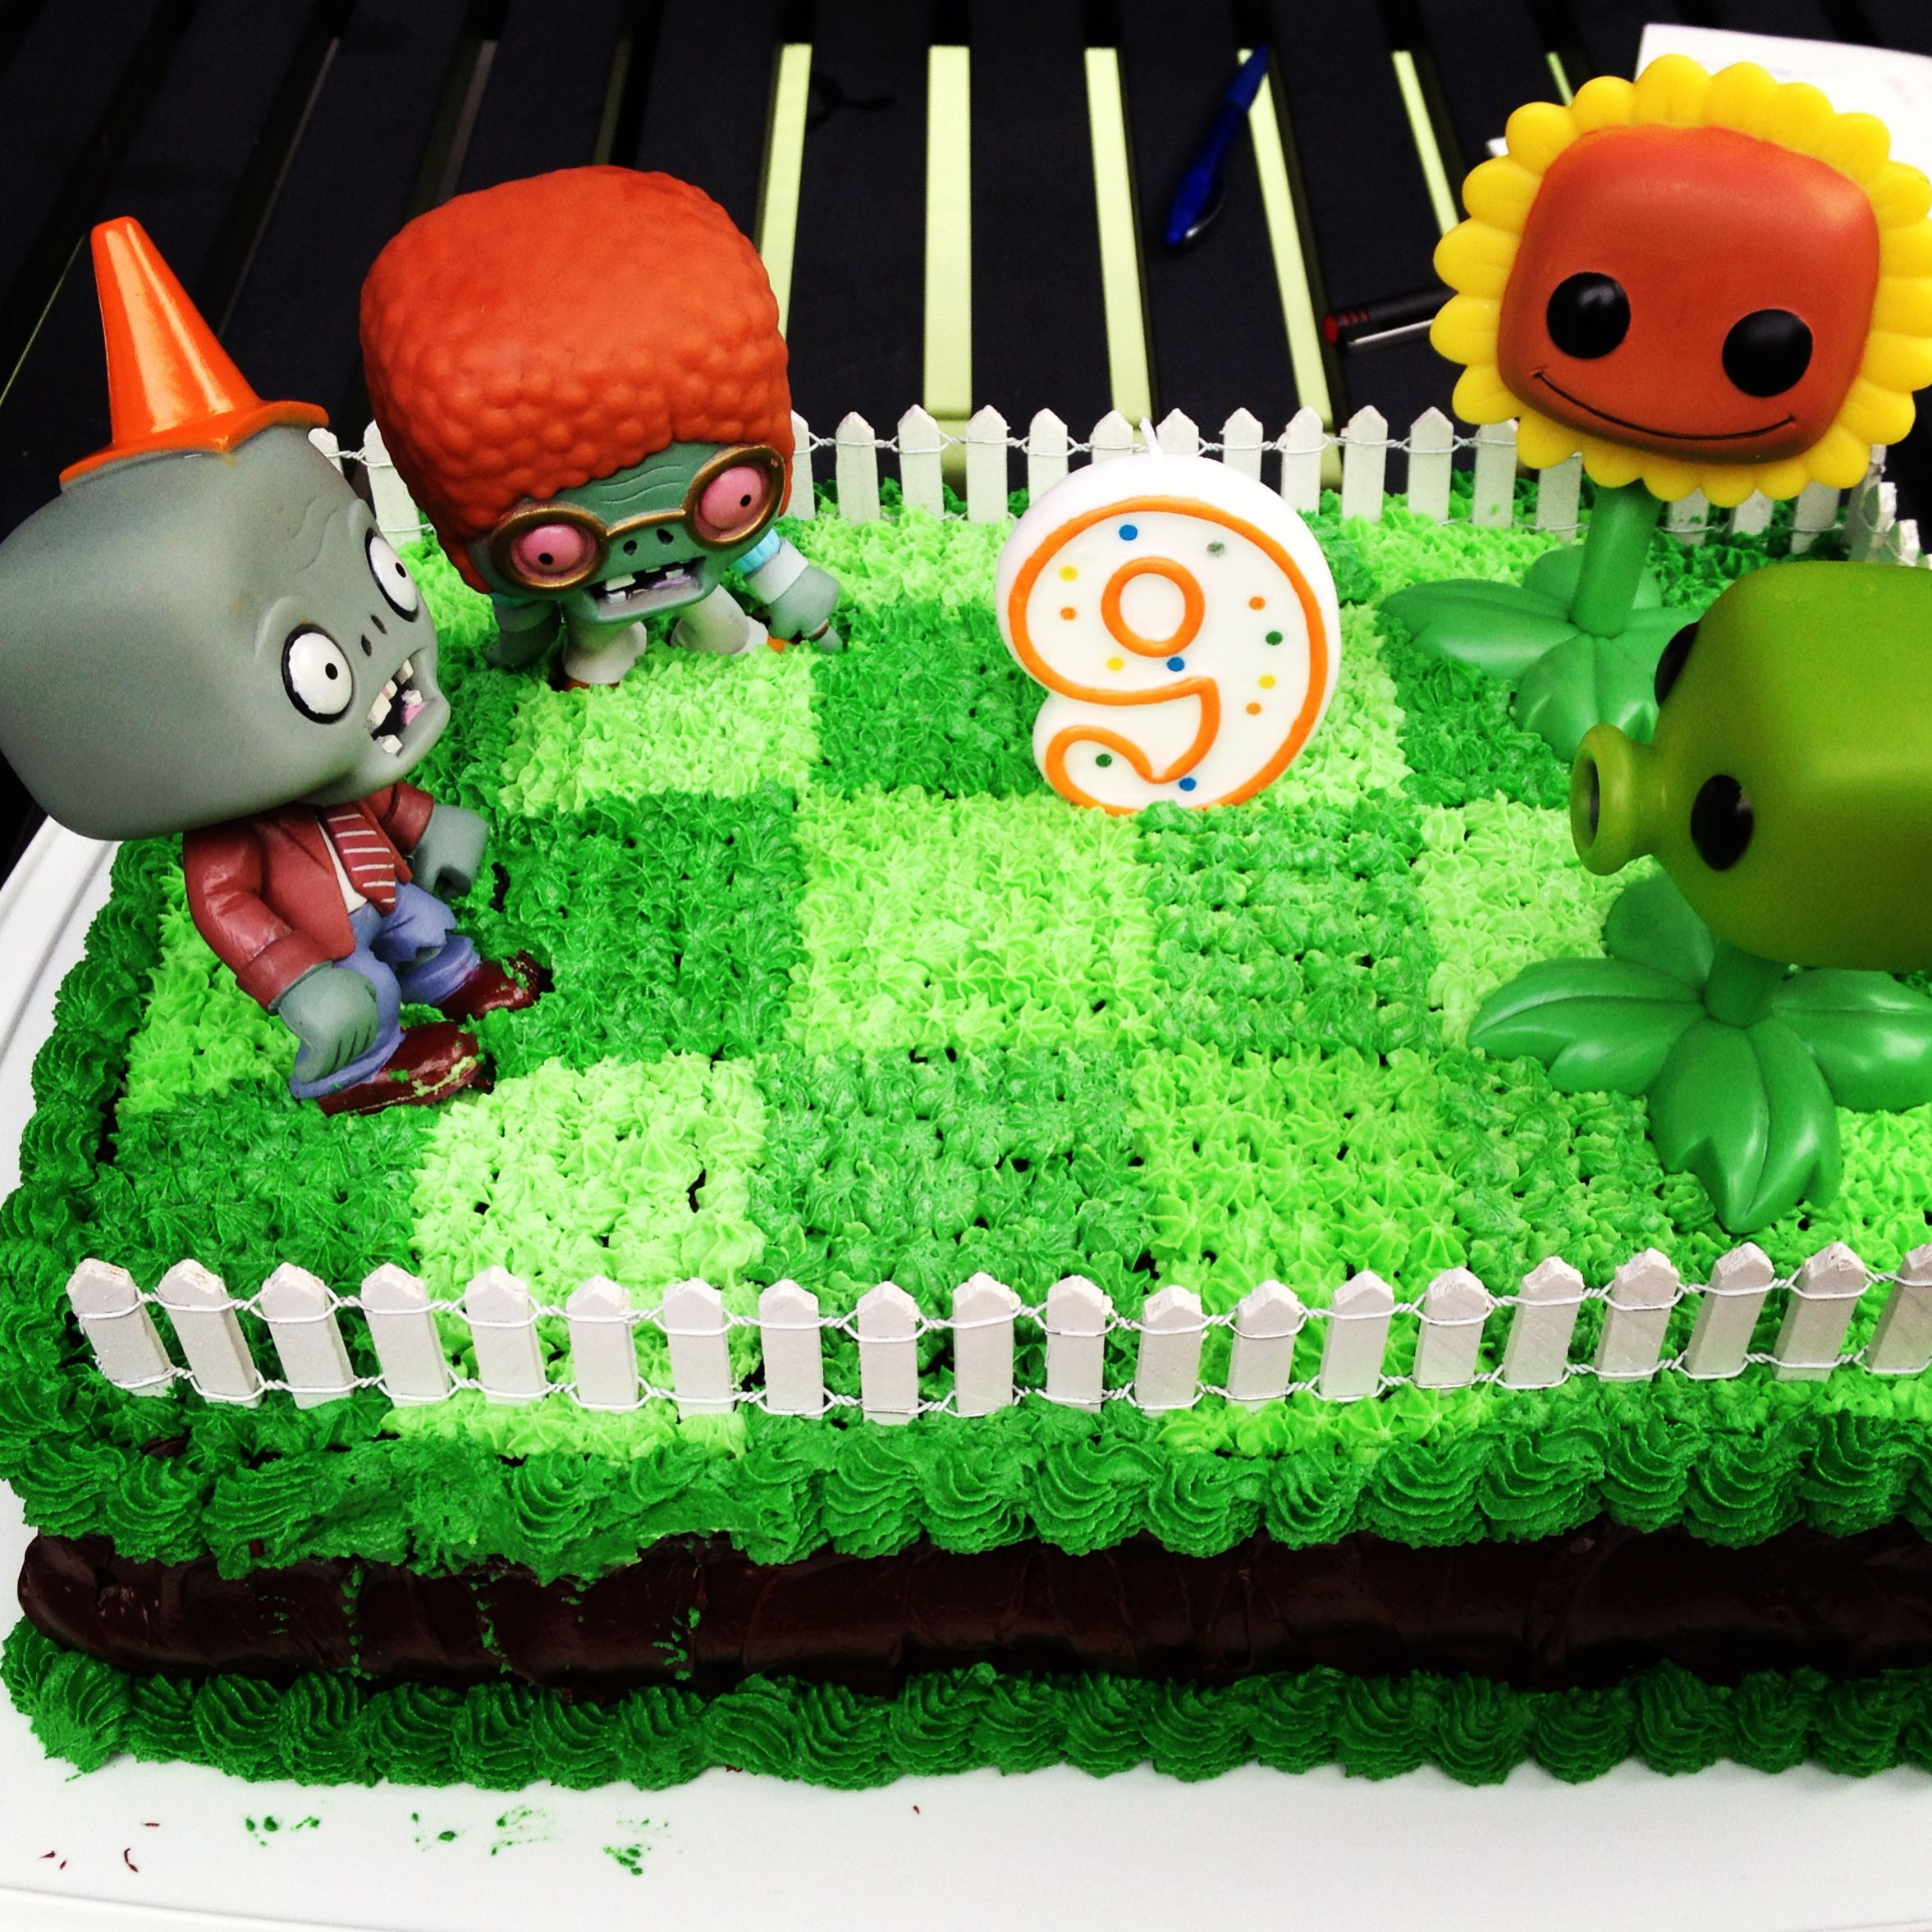 This Image Was Originally Uploaded To Easy Plants Vs Zombies Cake